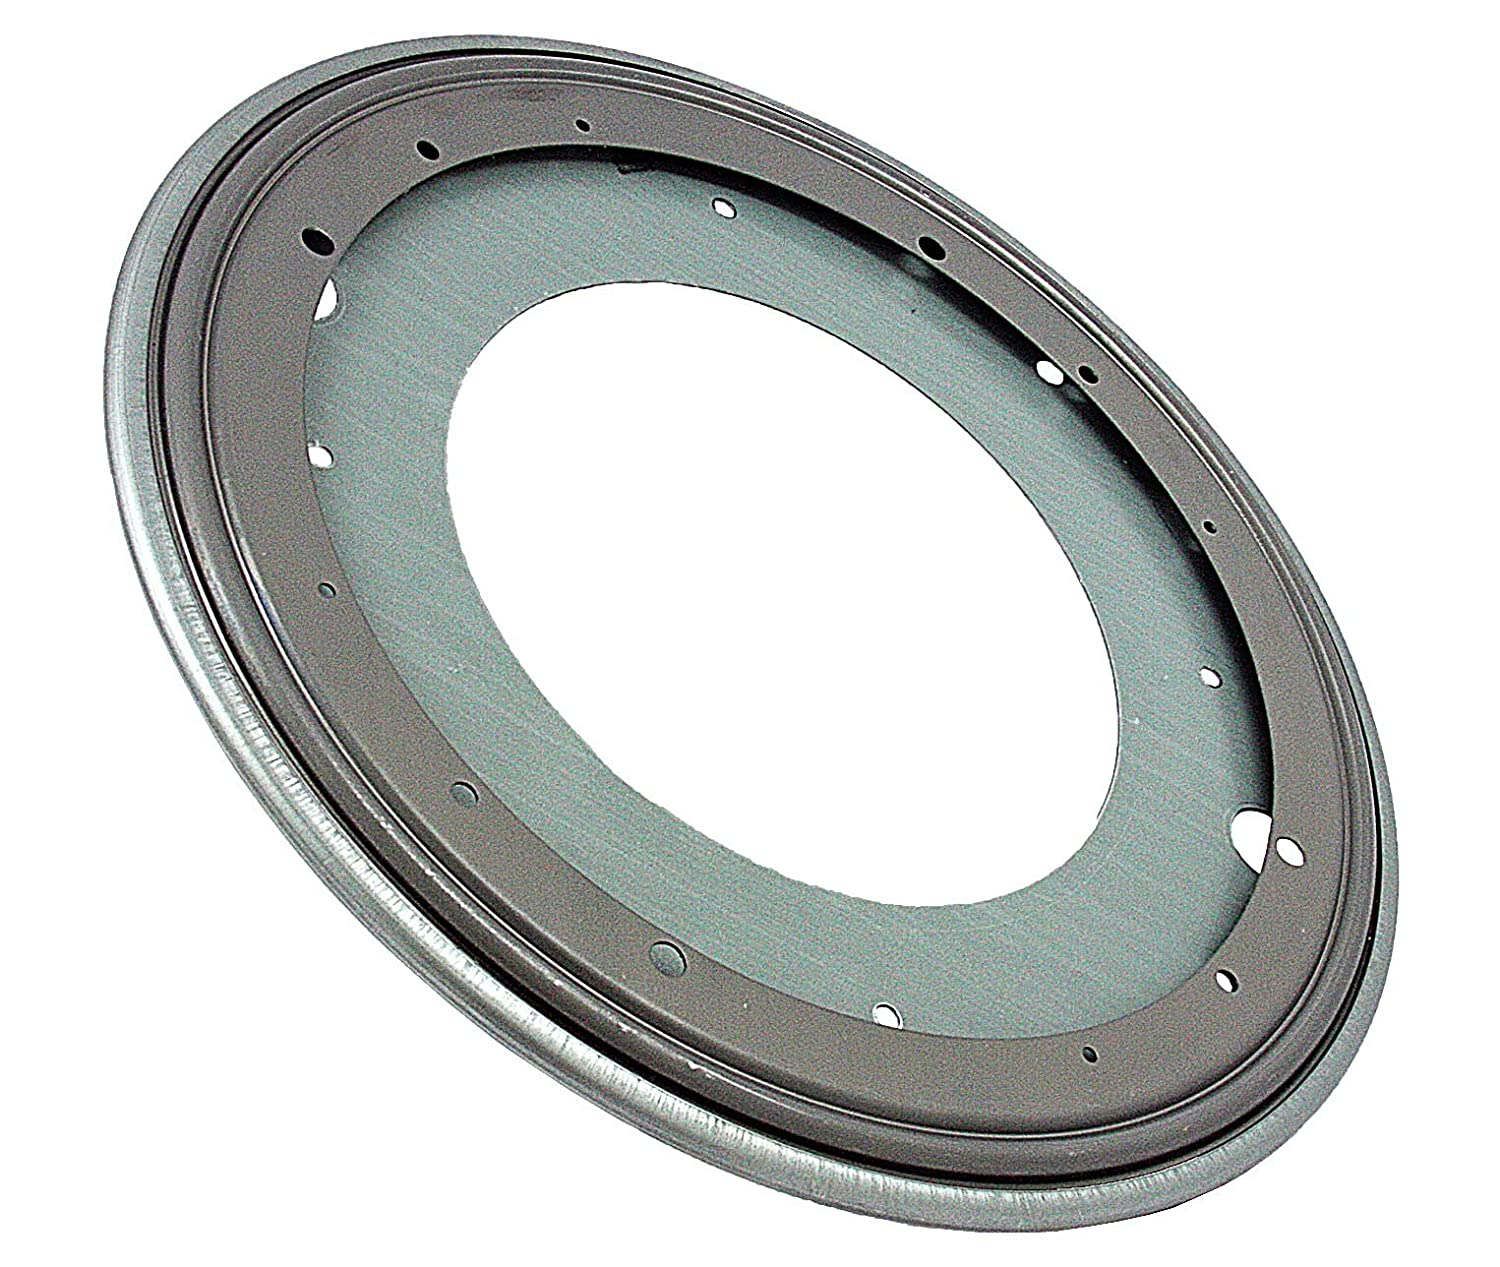 1000 lbs Capacity 12 Lazy Susan Bearing 5/16 Thick Turntable Bearings VXB Brand 4J-4TV9-KL00